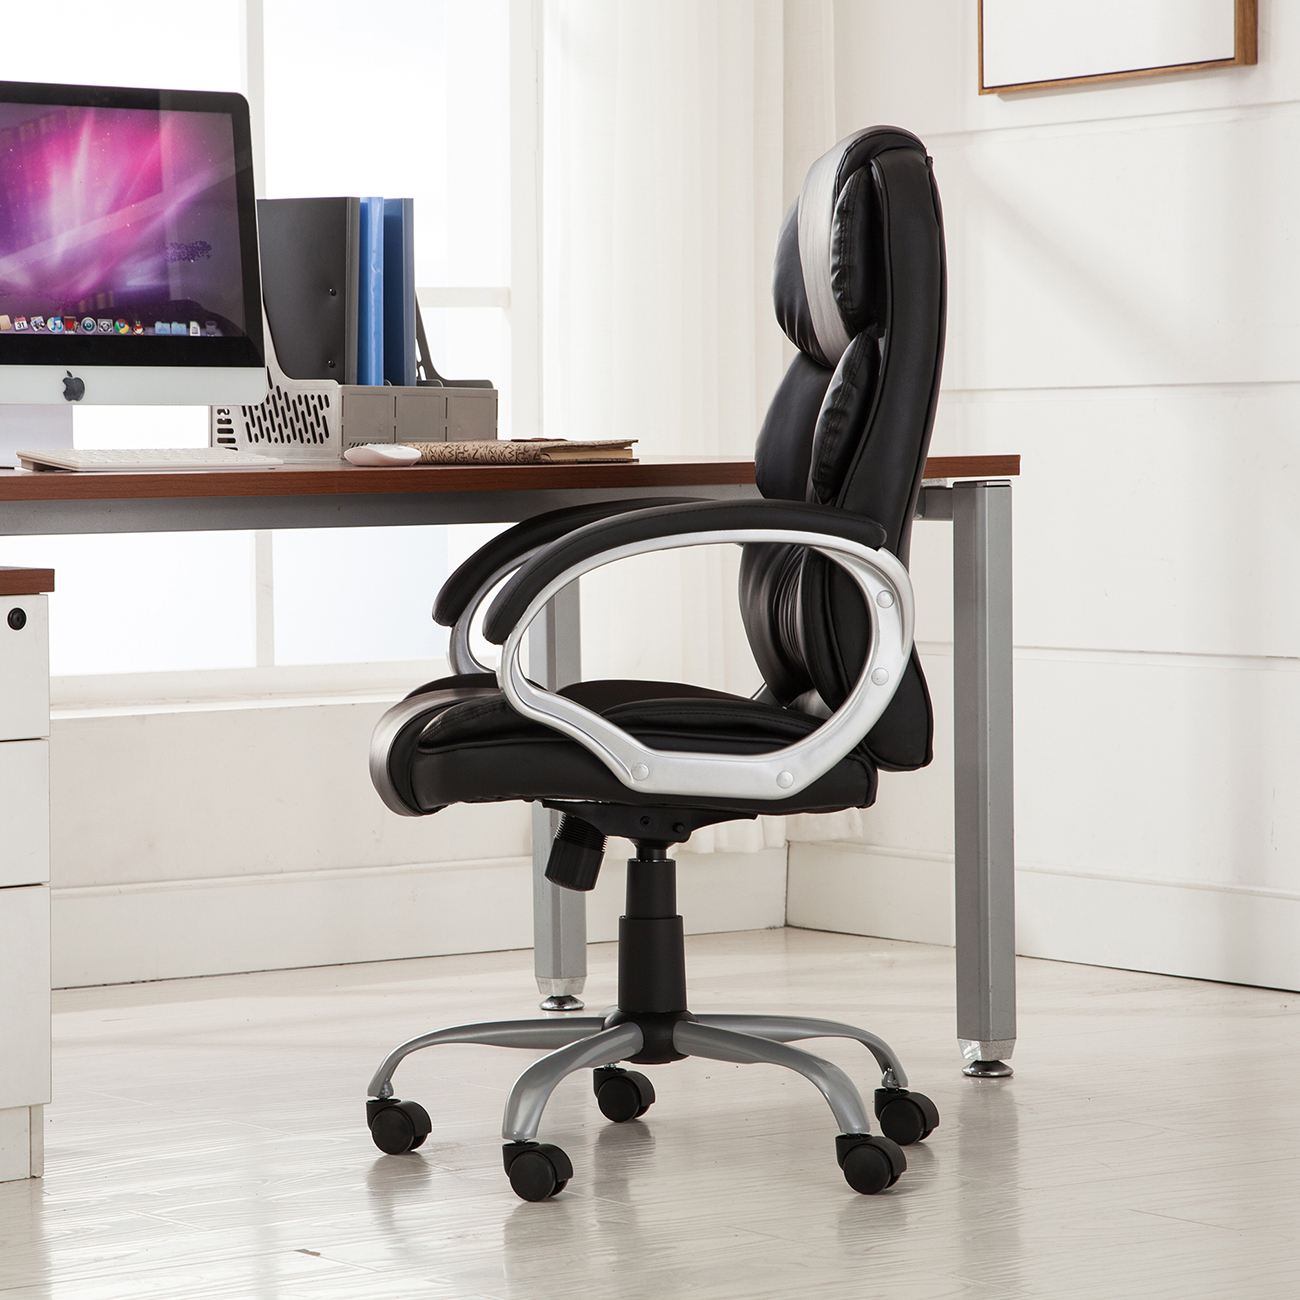 PU-Leather-Office-Rolling-Computer-Chair-Black-Mocha-High-Back-Executive-Desk thumbnail 6